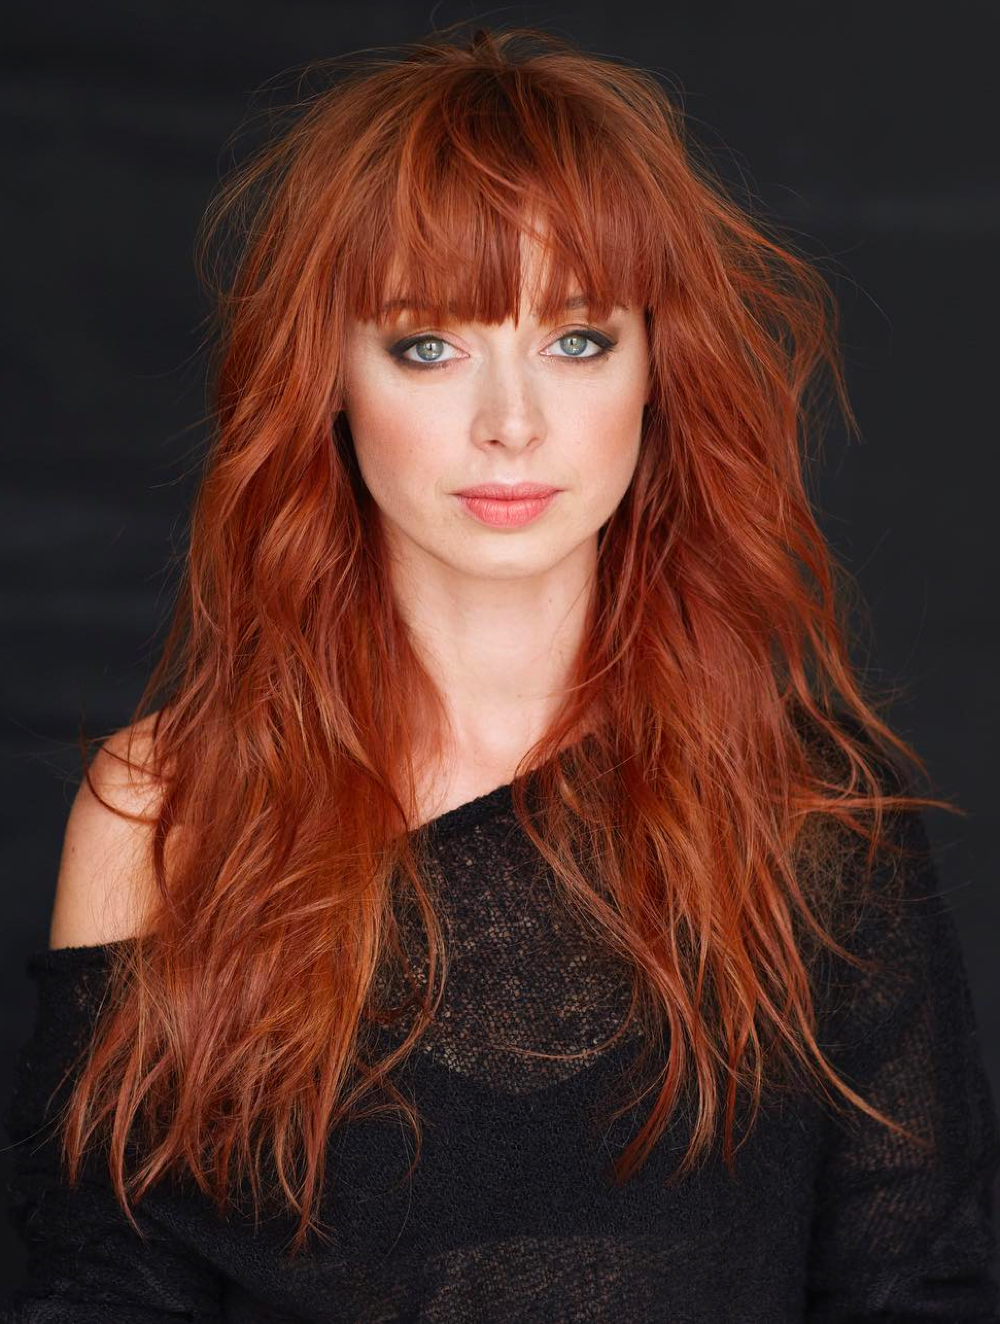 Current Long Layer Shagged Hairstyles In Long Shag Haircuts: 36 Examples For (View 10 of 20)